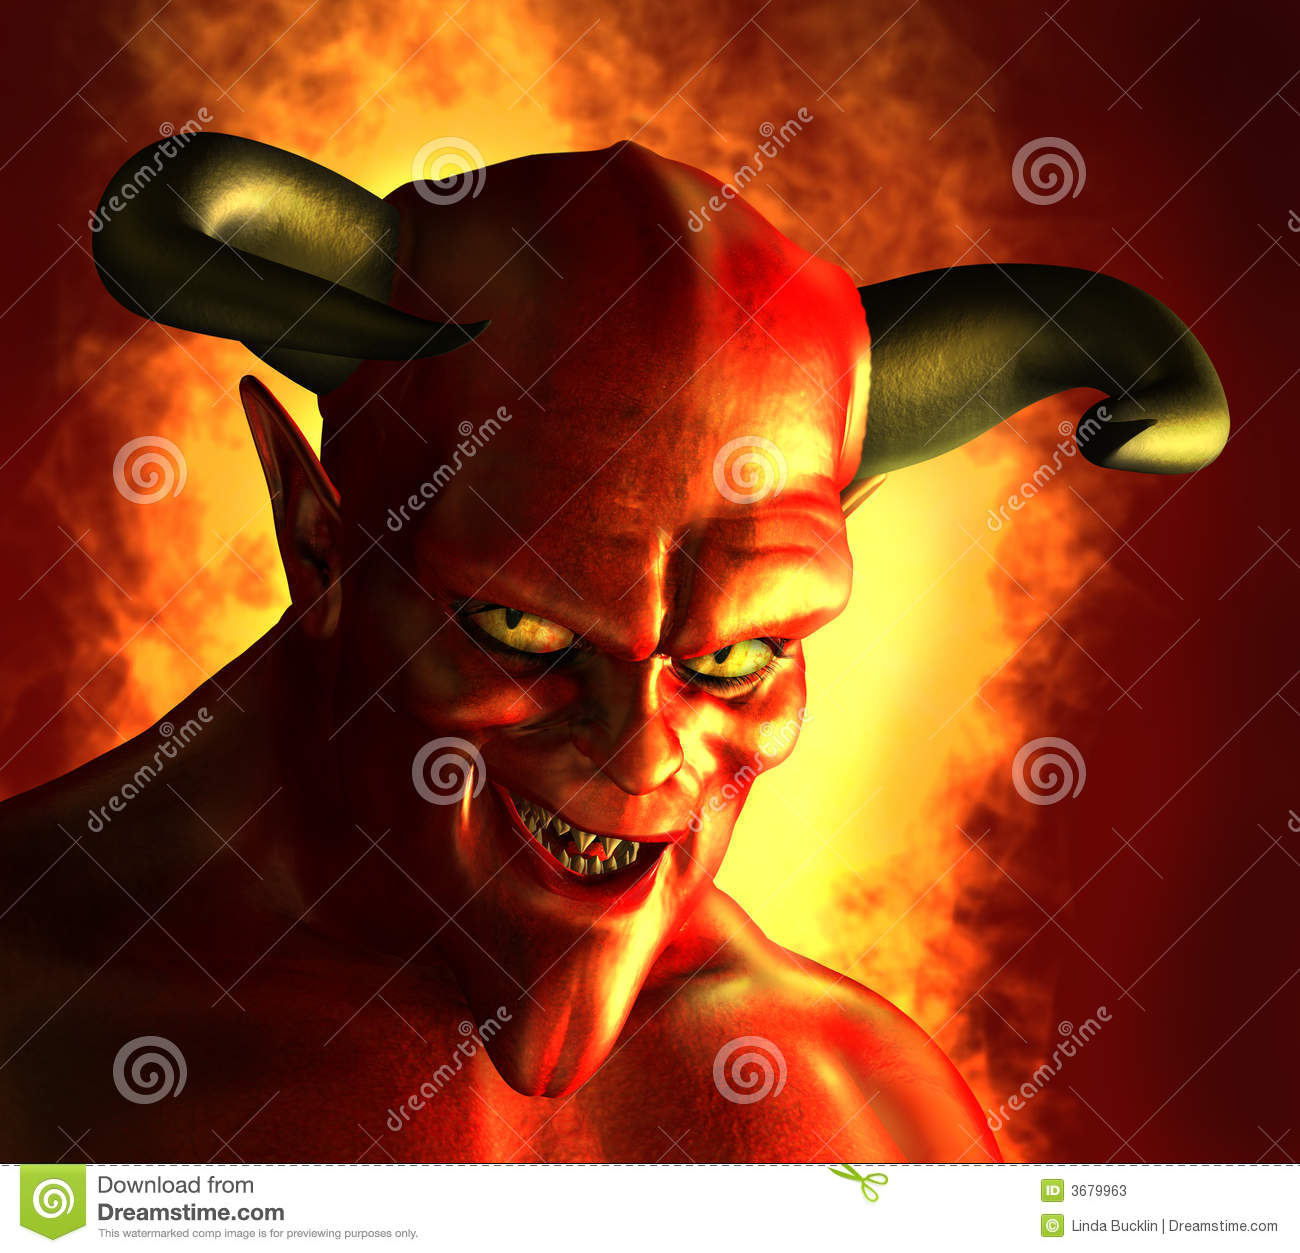 Devilish Grin Stock Illustration. Illustration Of Devil